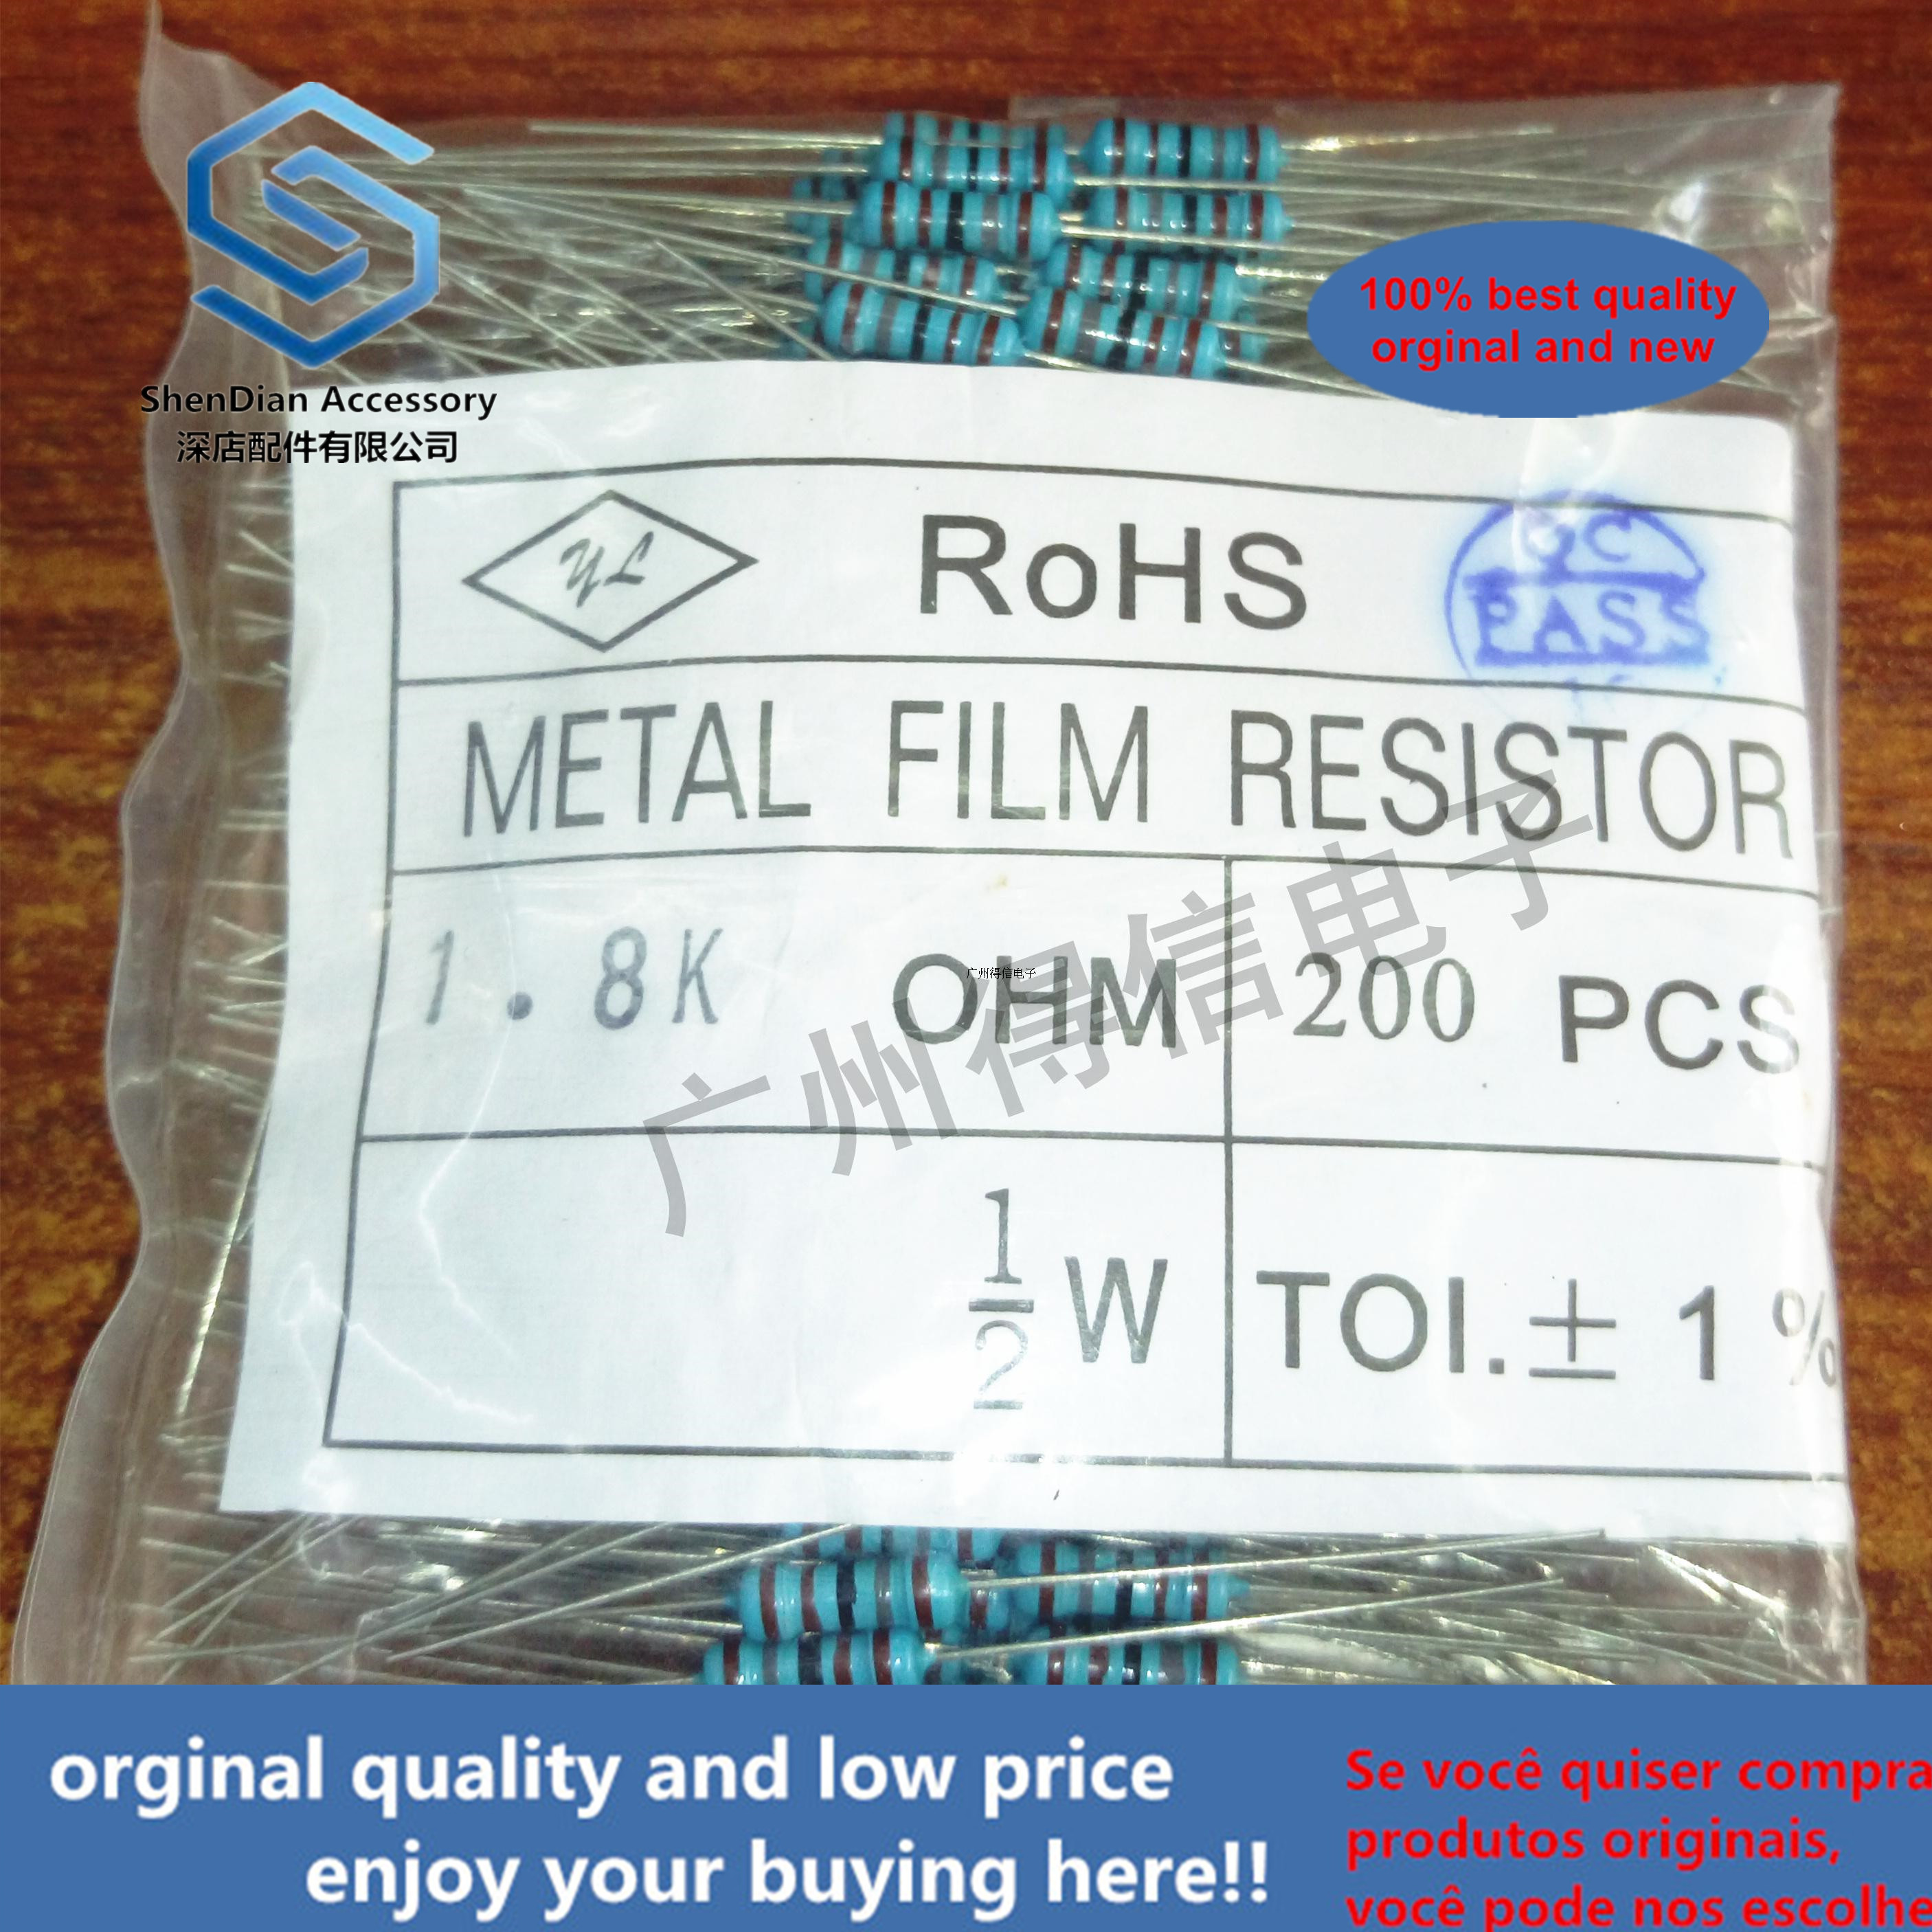 200pcs 1 / 2W 9.1R 9.1 Euro 1% Brand New Metal Film Iron Feet Resistor Bag 200 Pcs Per Pack